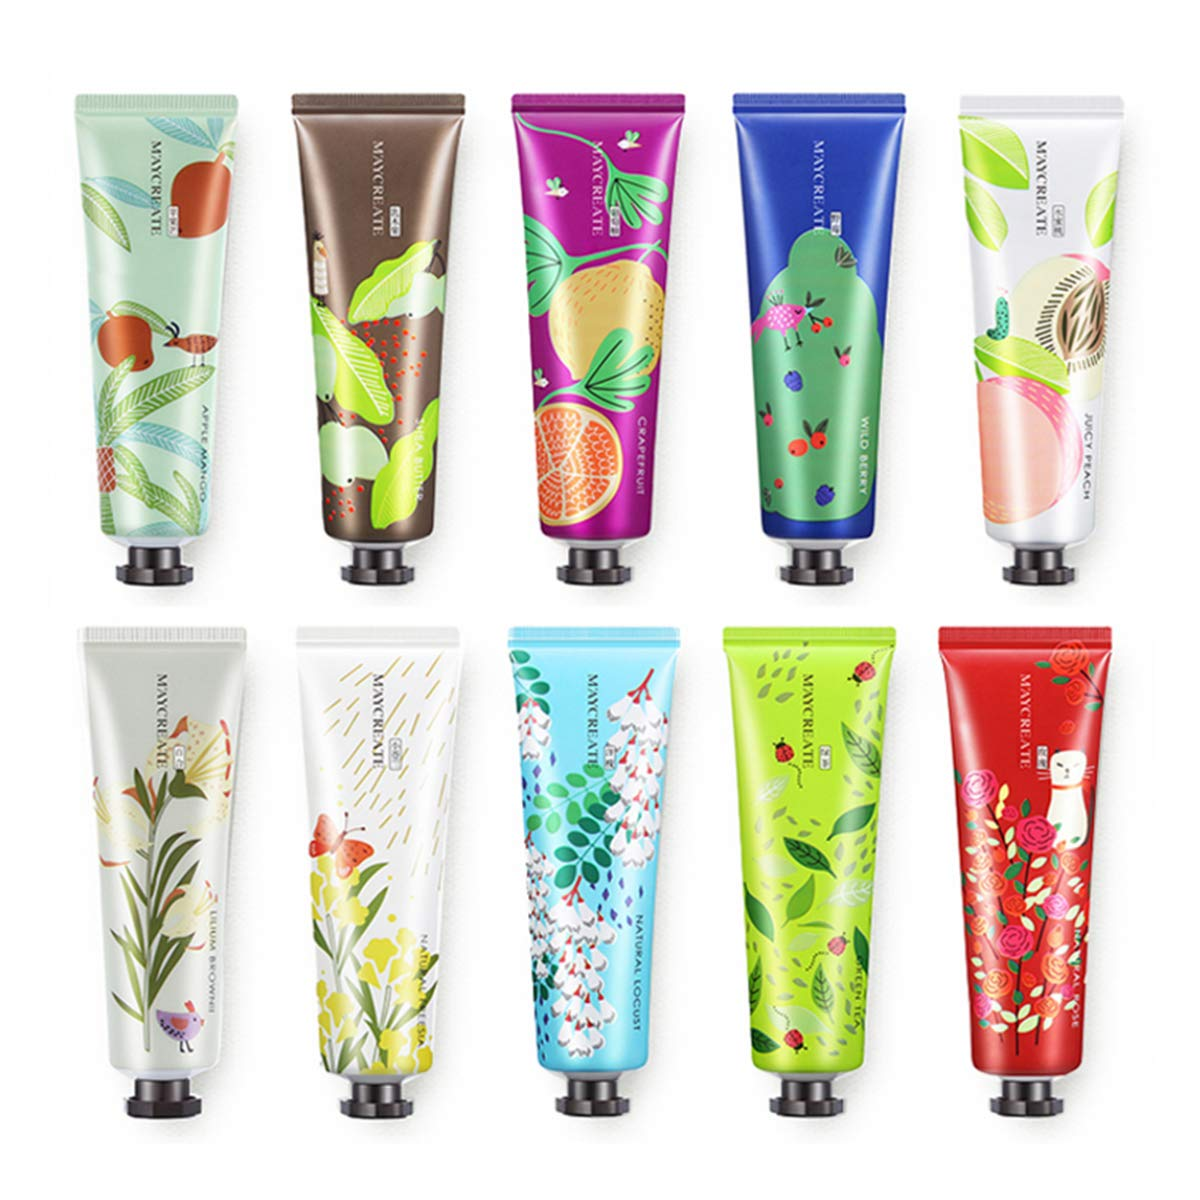 10 Pack Fruits Extract Fragrance Hand Cream,Moisturizing Hand Care Cream Travel Gift Set with Shea Butter For Men And Women-30ml (Style-1)